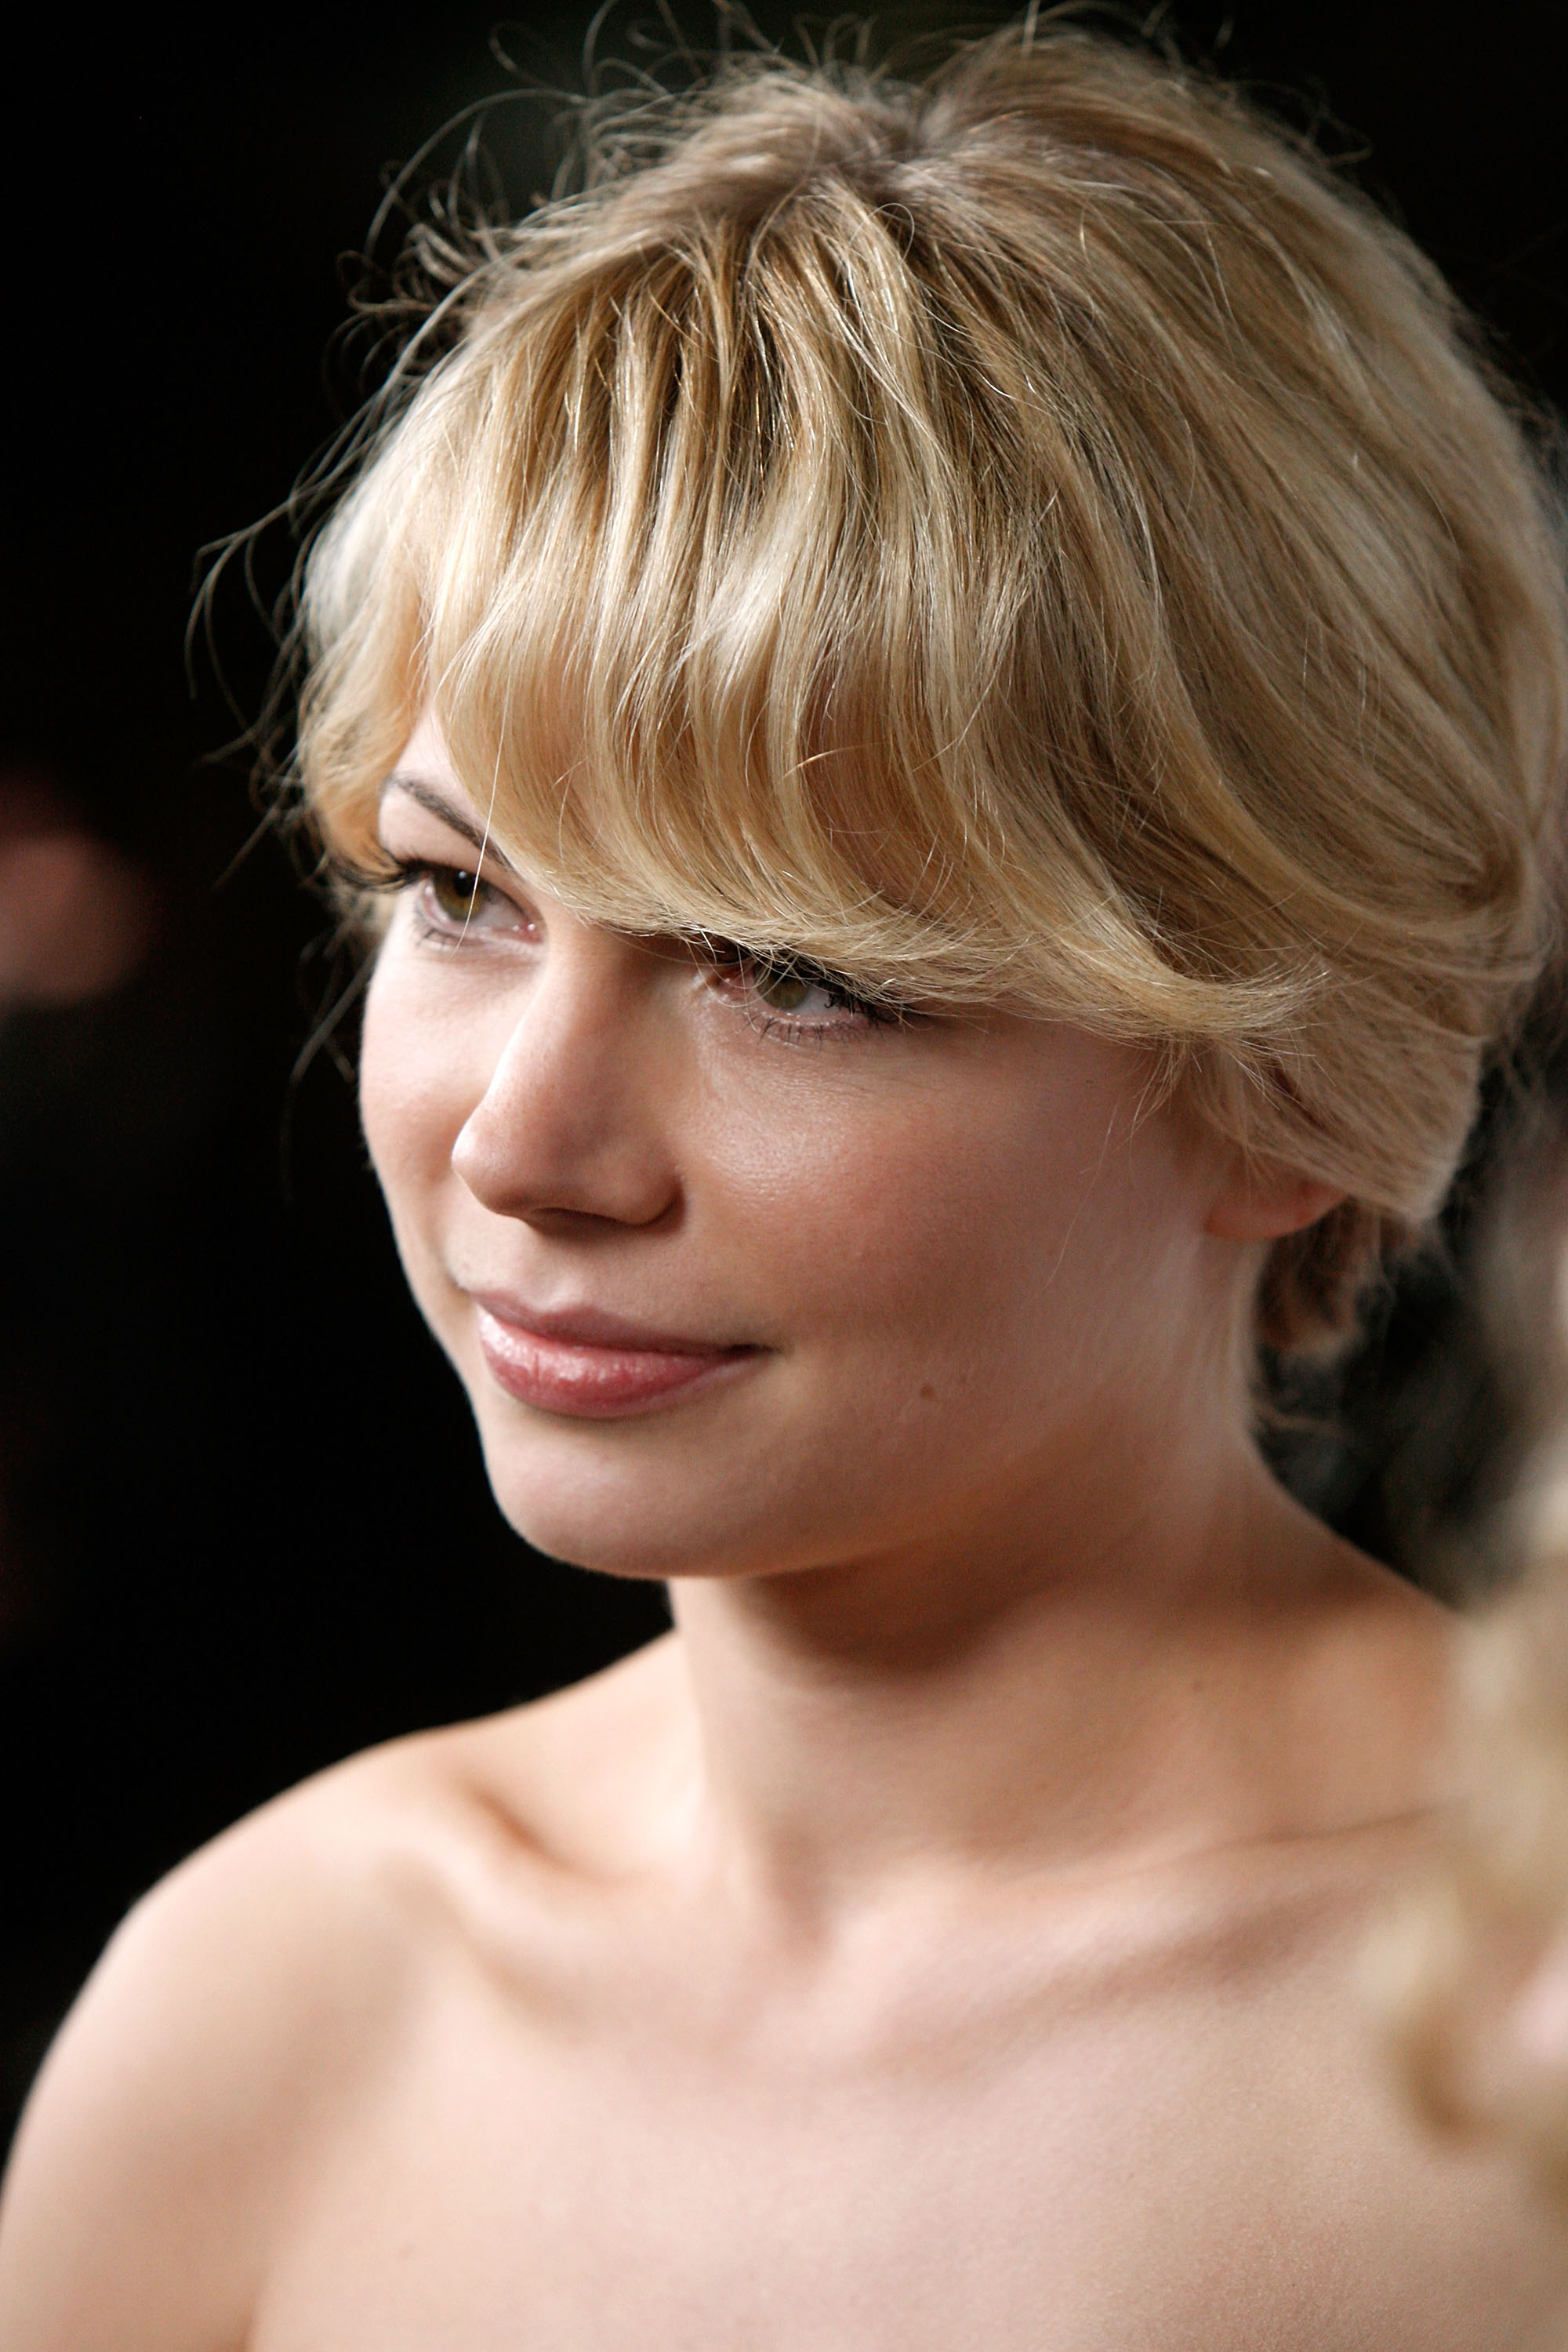 Michelle Williams(actress) photo gallery - page #9 | Celebs-Place.com